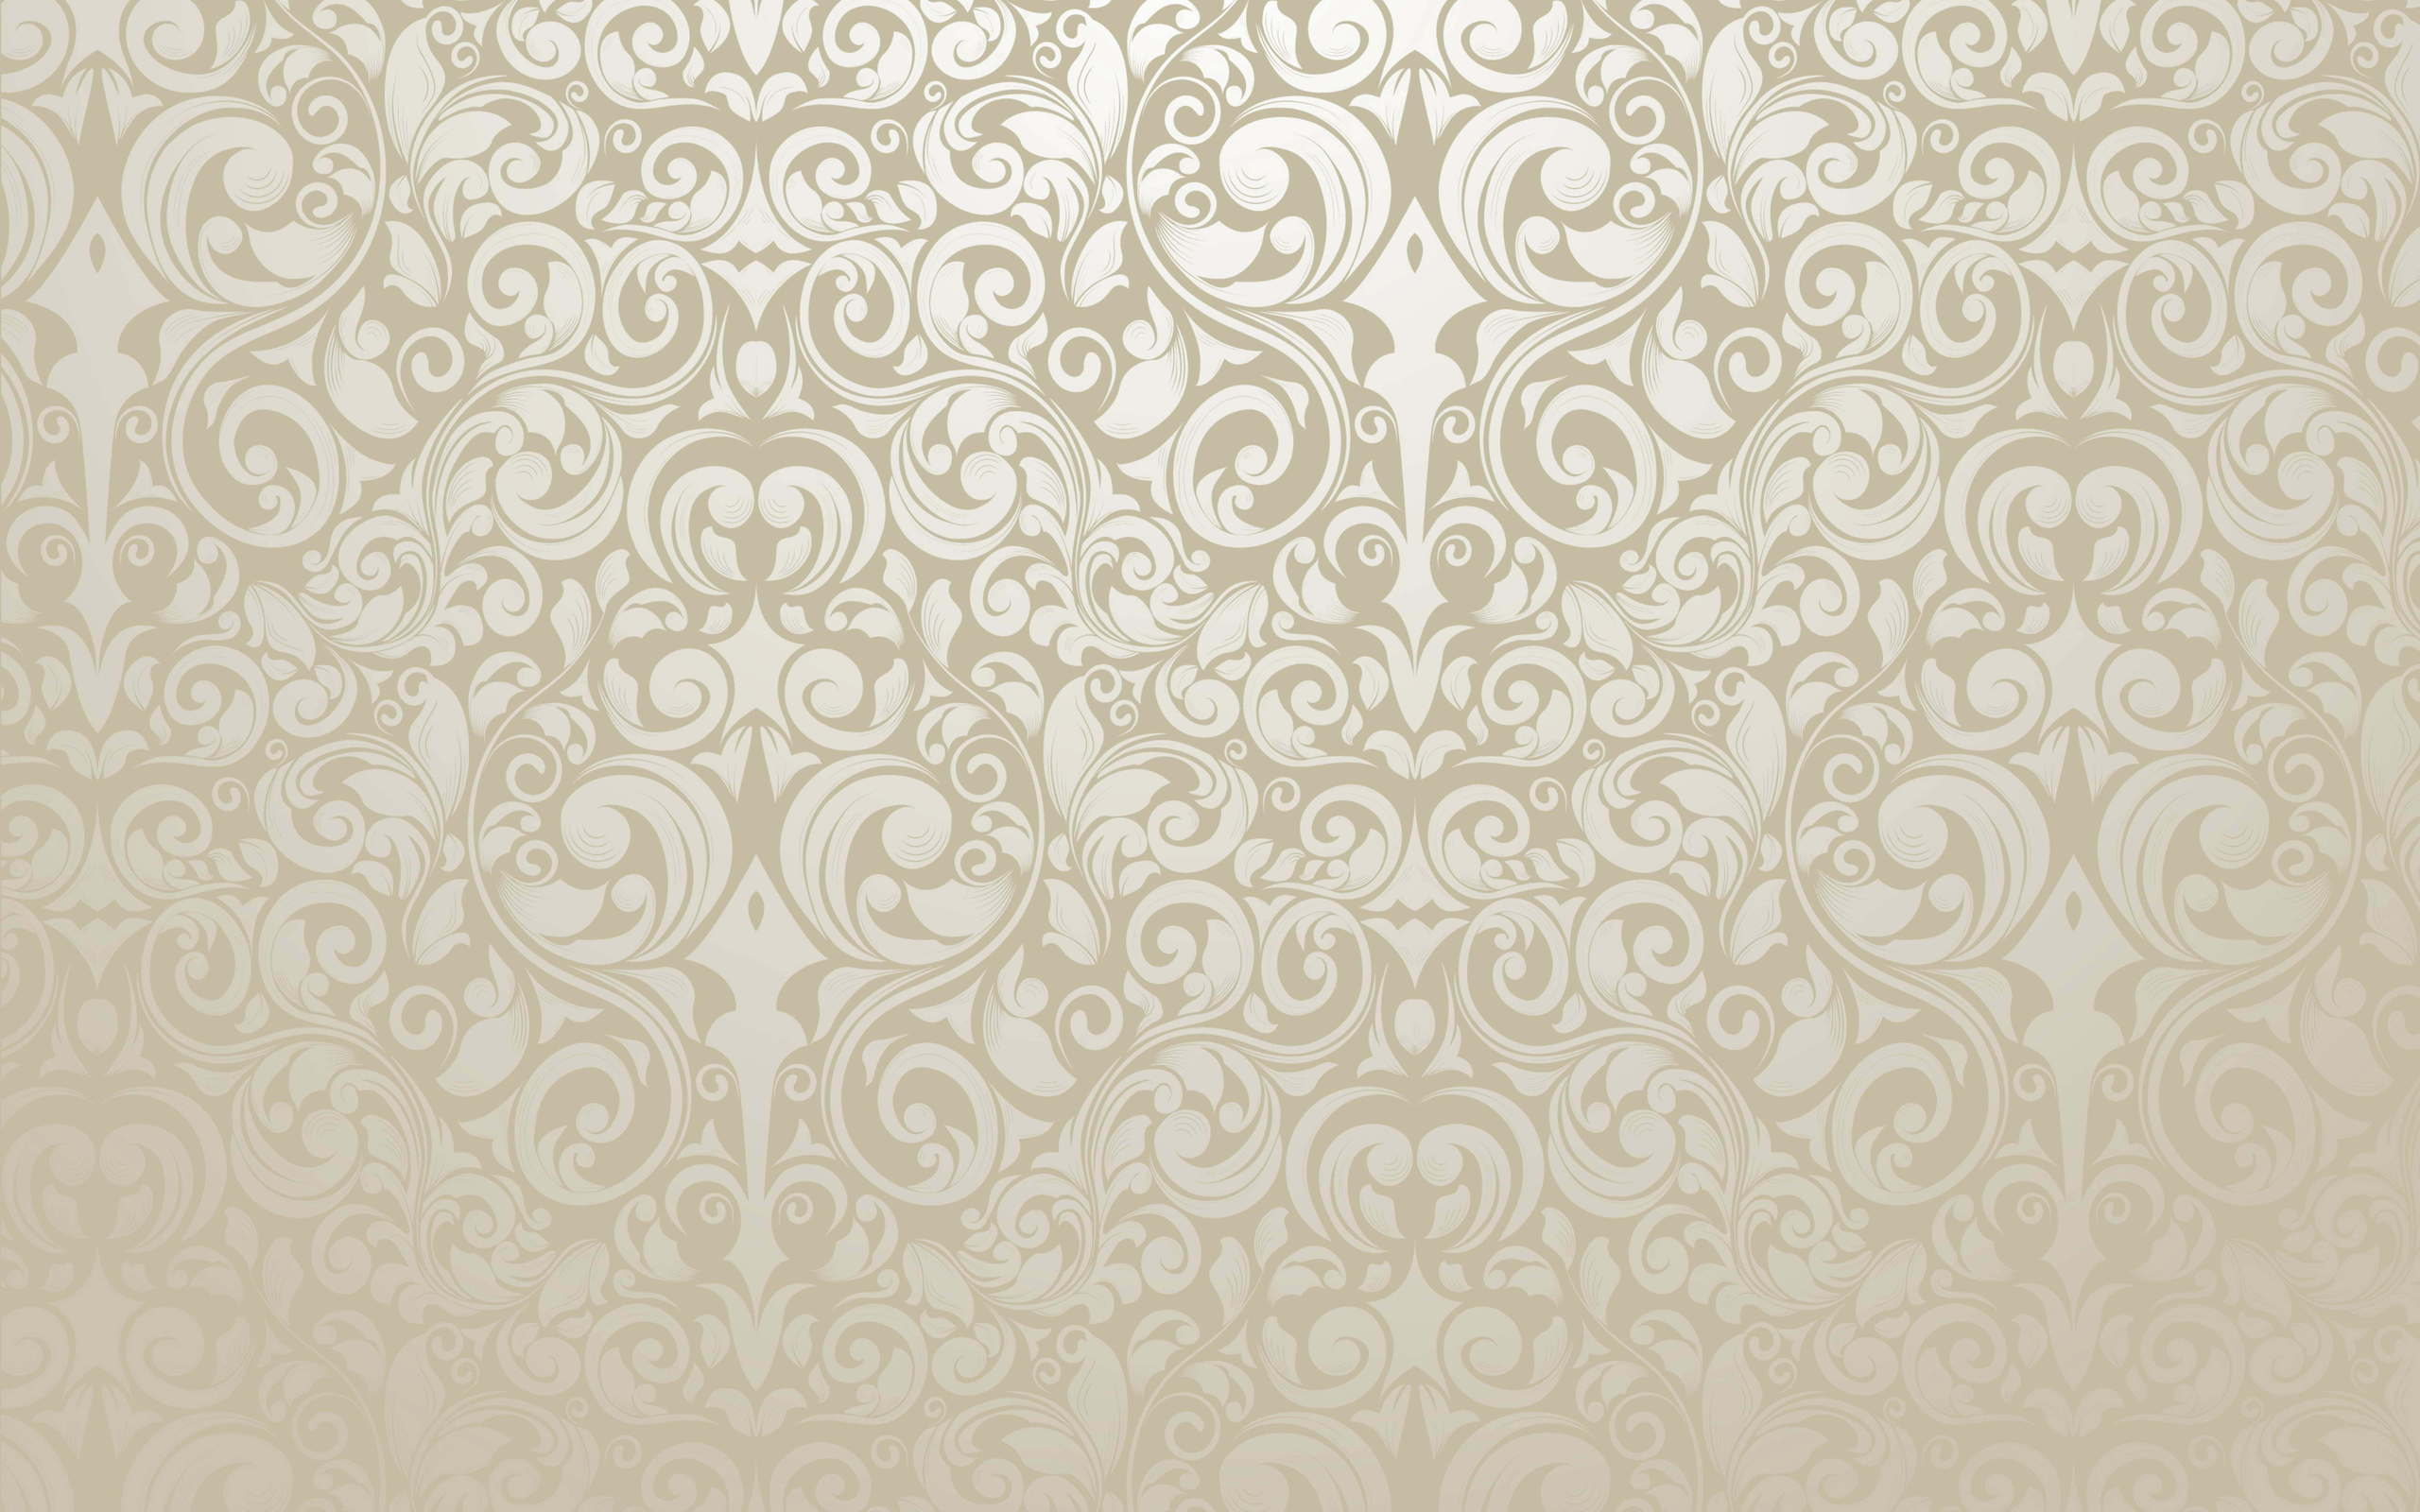 HD Wallpaper Pattern Vintage for Card Design HD Wallpapers for 2560x1600